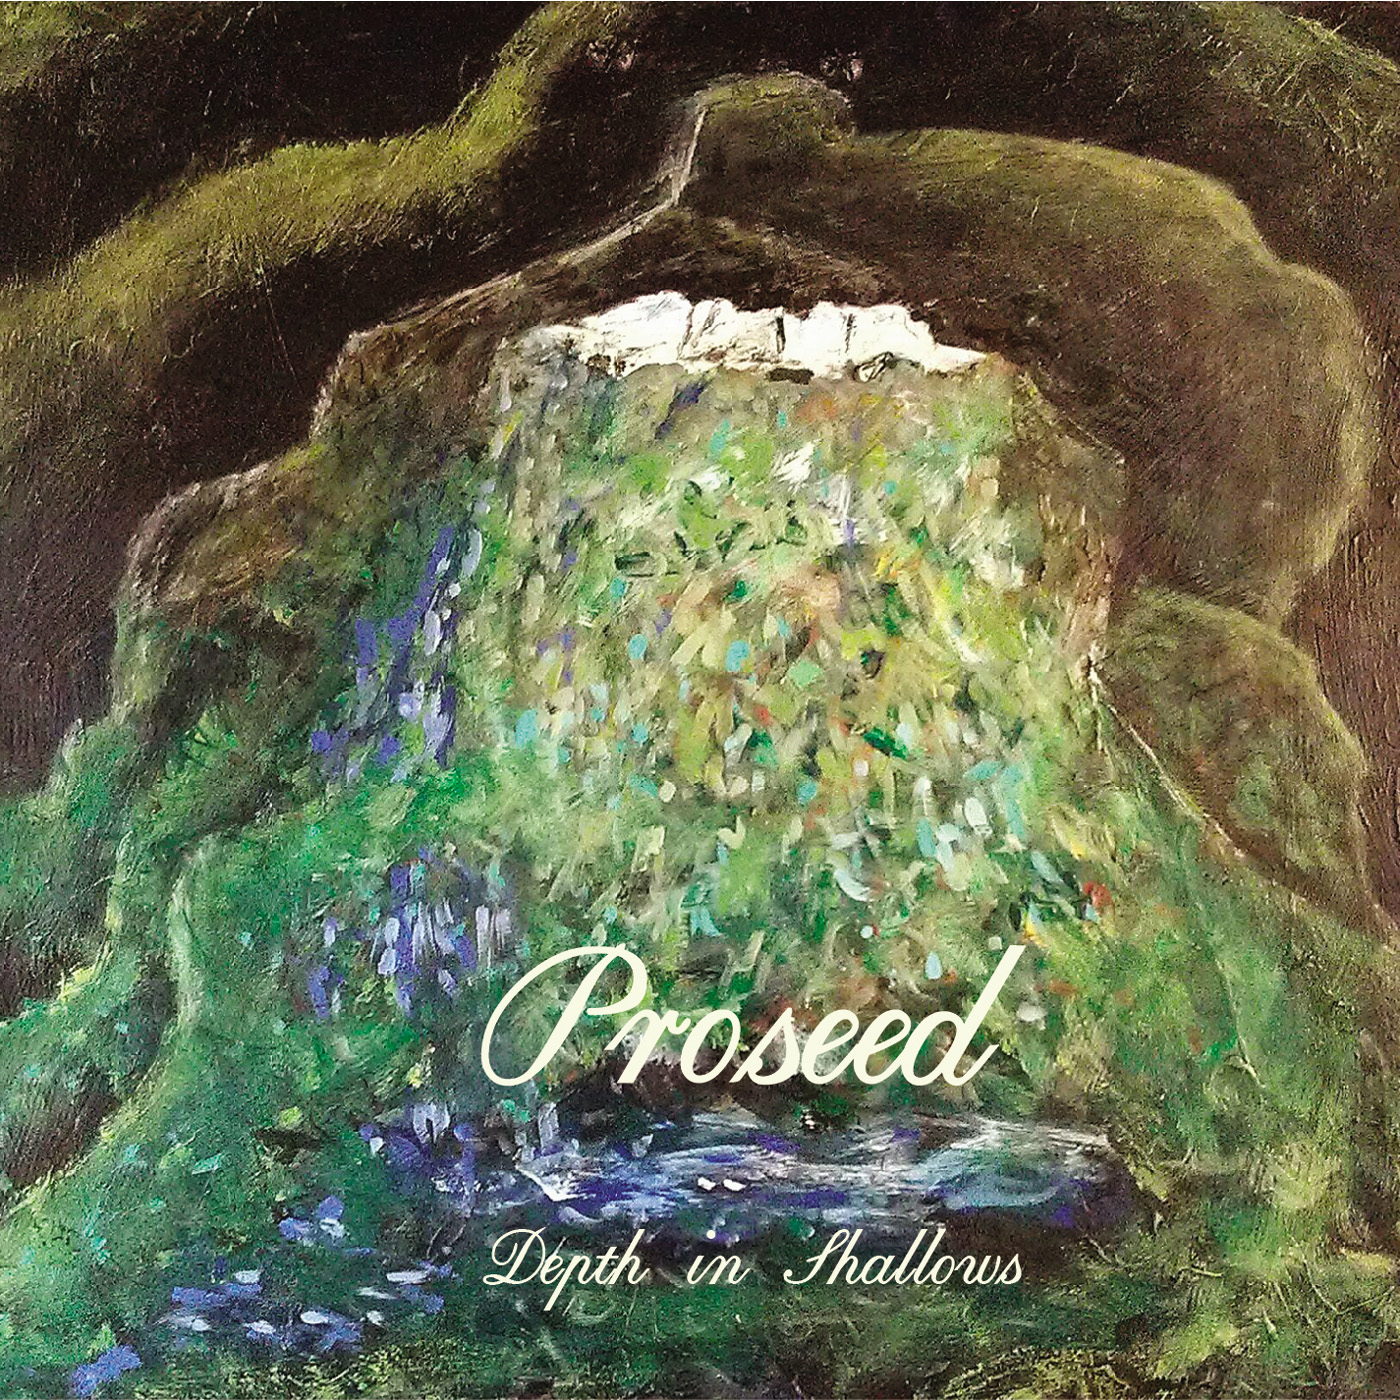 Depth in Shallows (CD) - Proseed